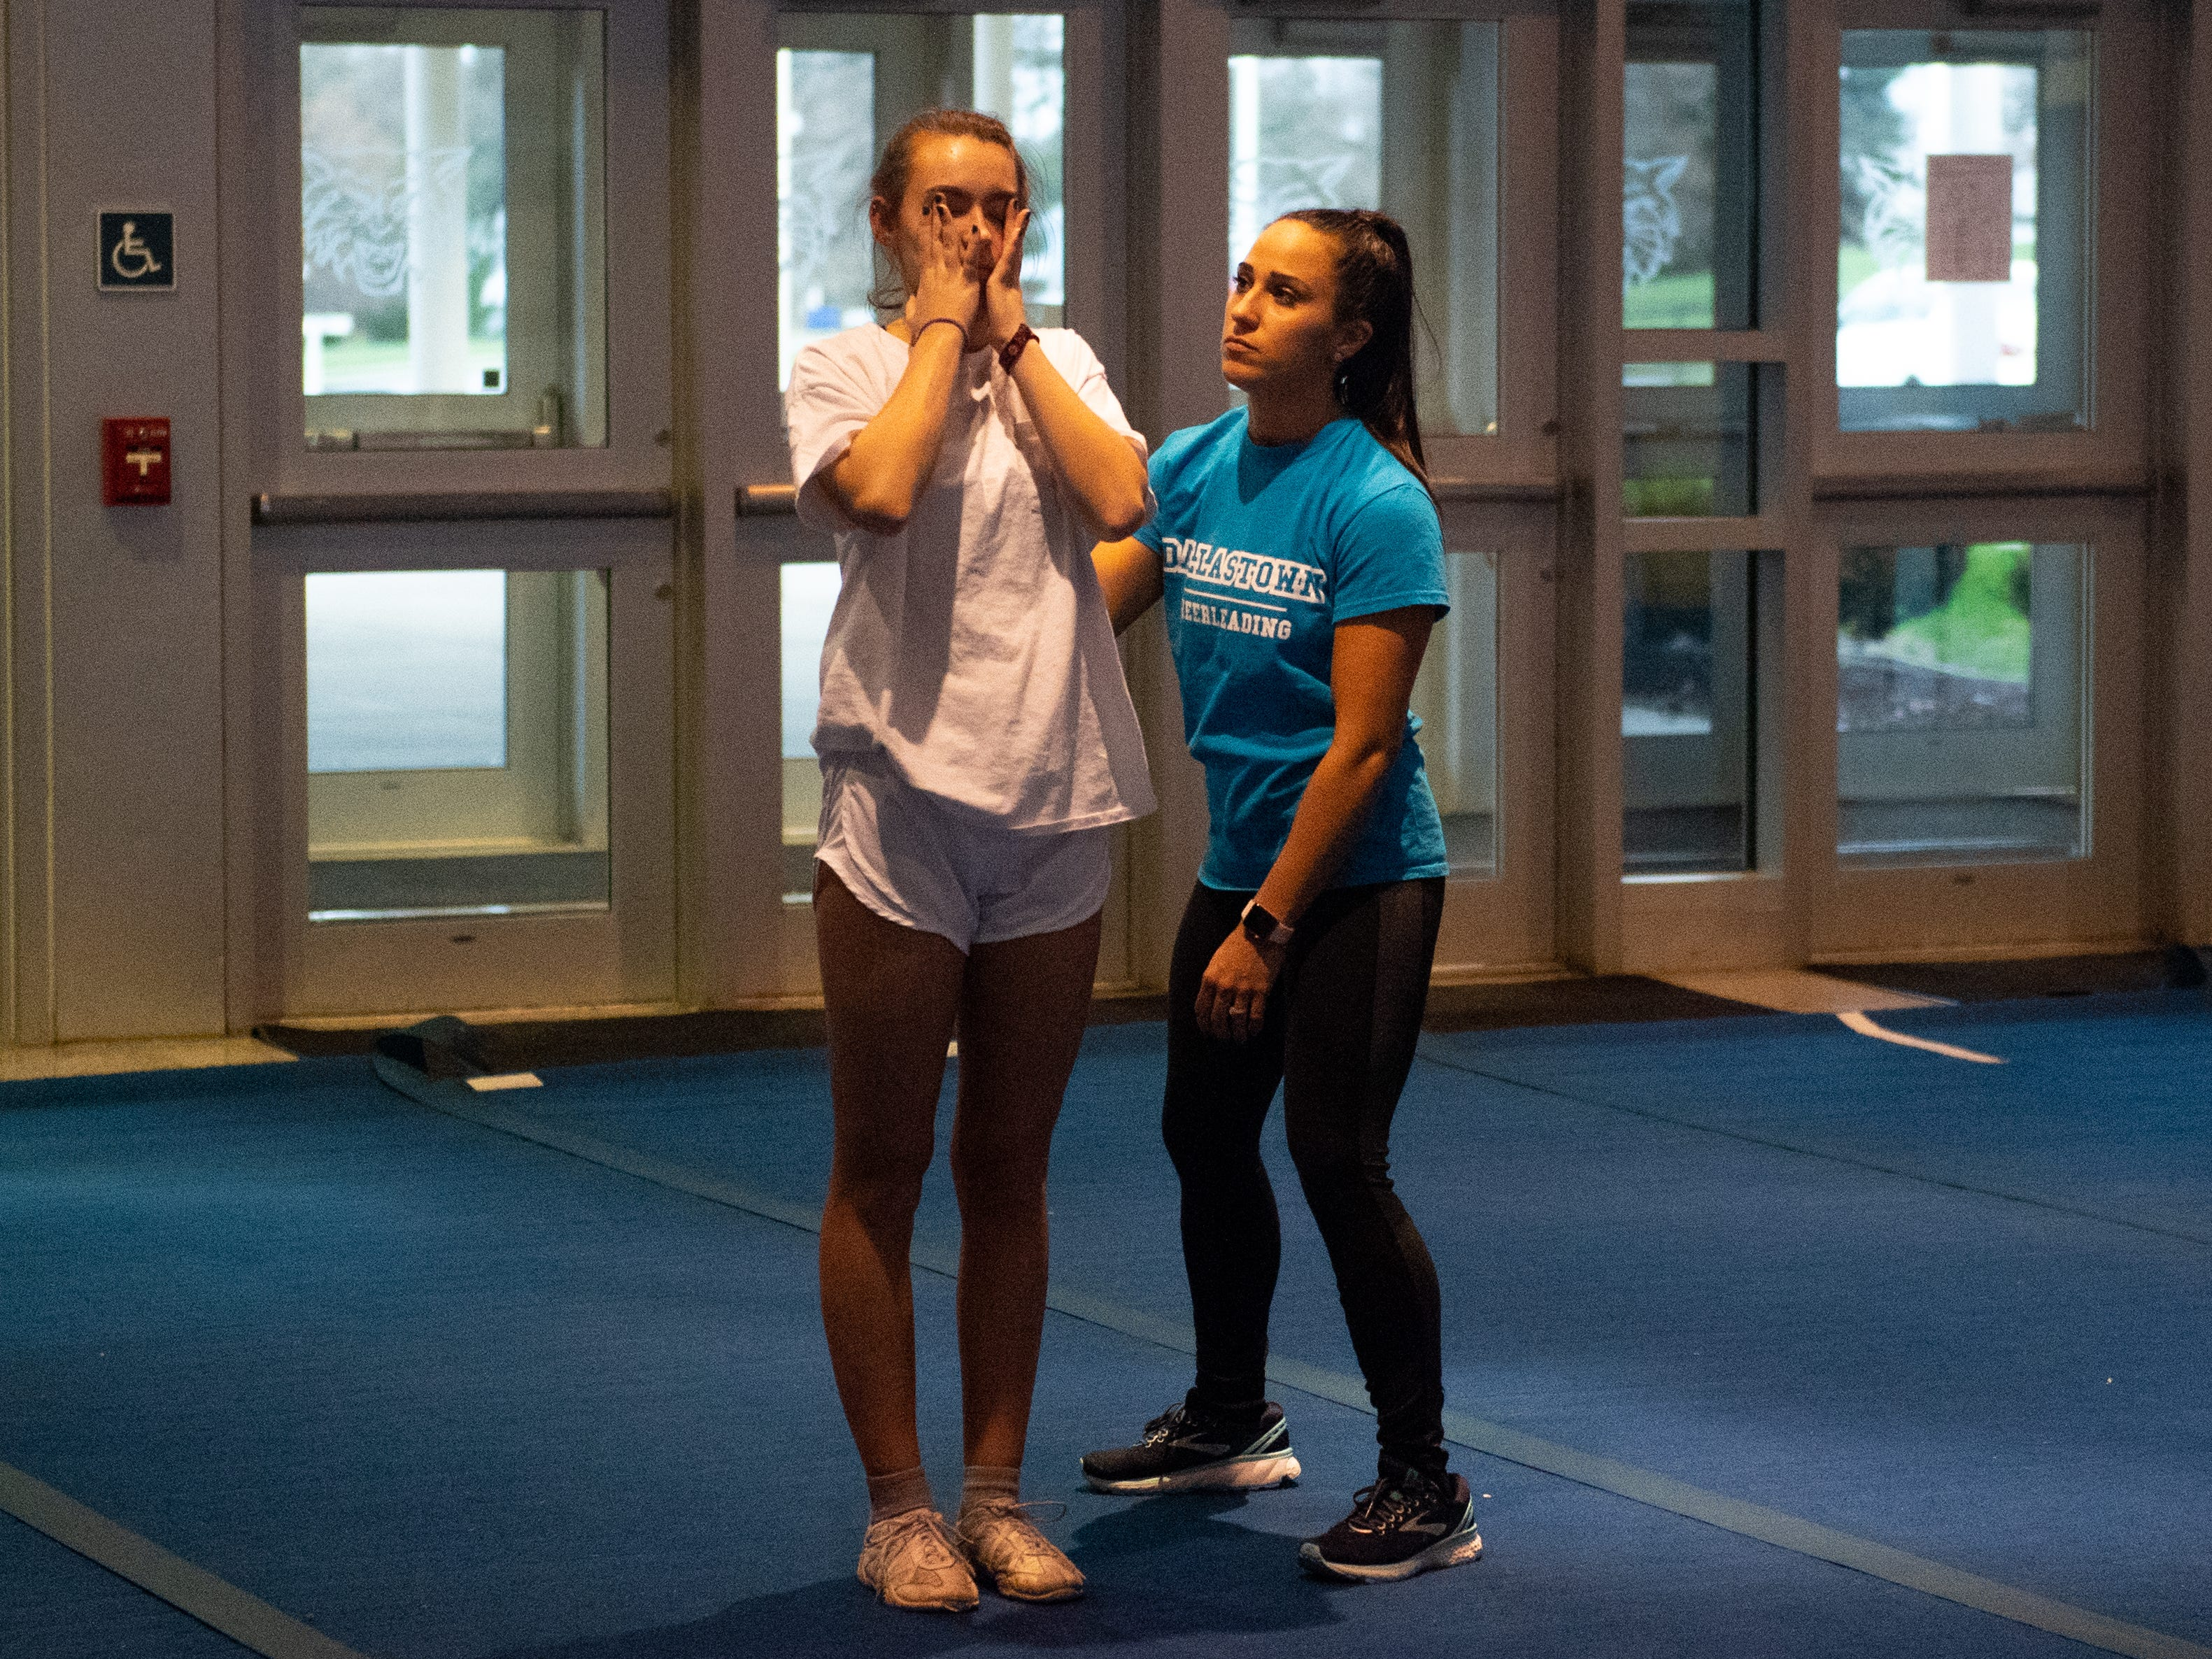 Assistant Coach Toni Sprenkle (right) helps Savannah Mowen (left) do a backflip during Dallastown's competitive spirit practice, November 14, 2018.